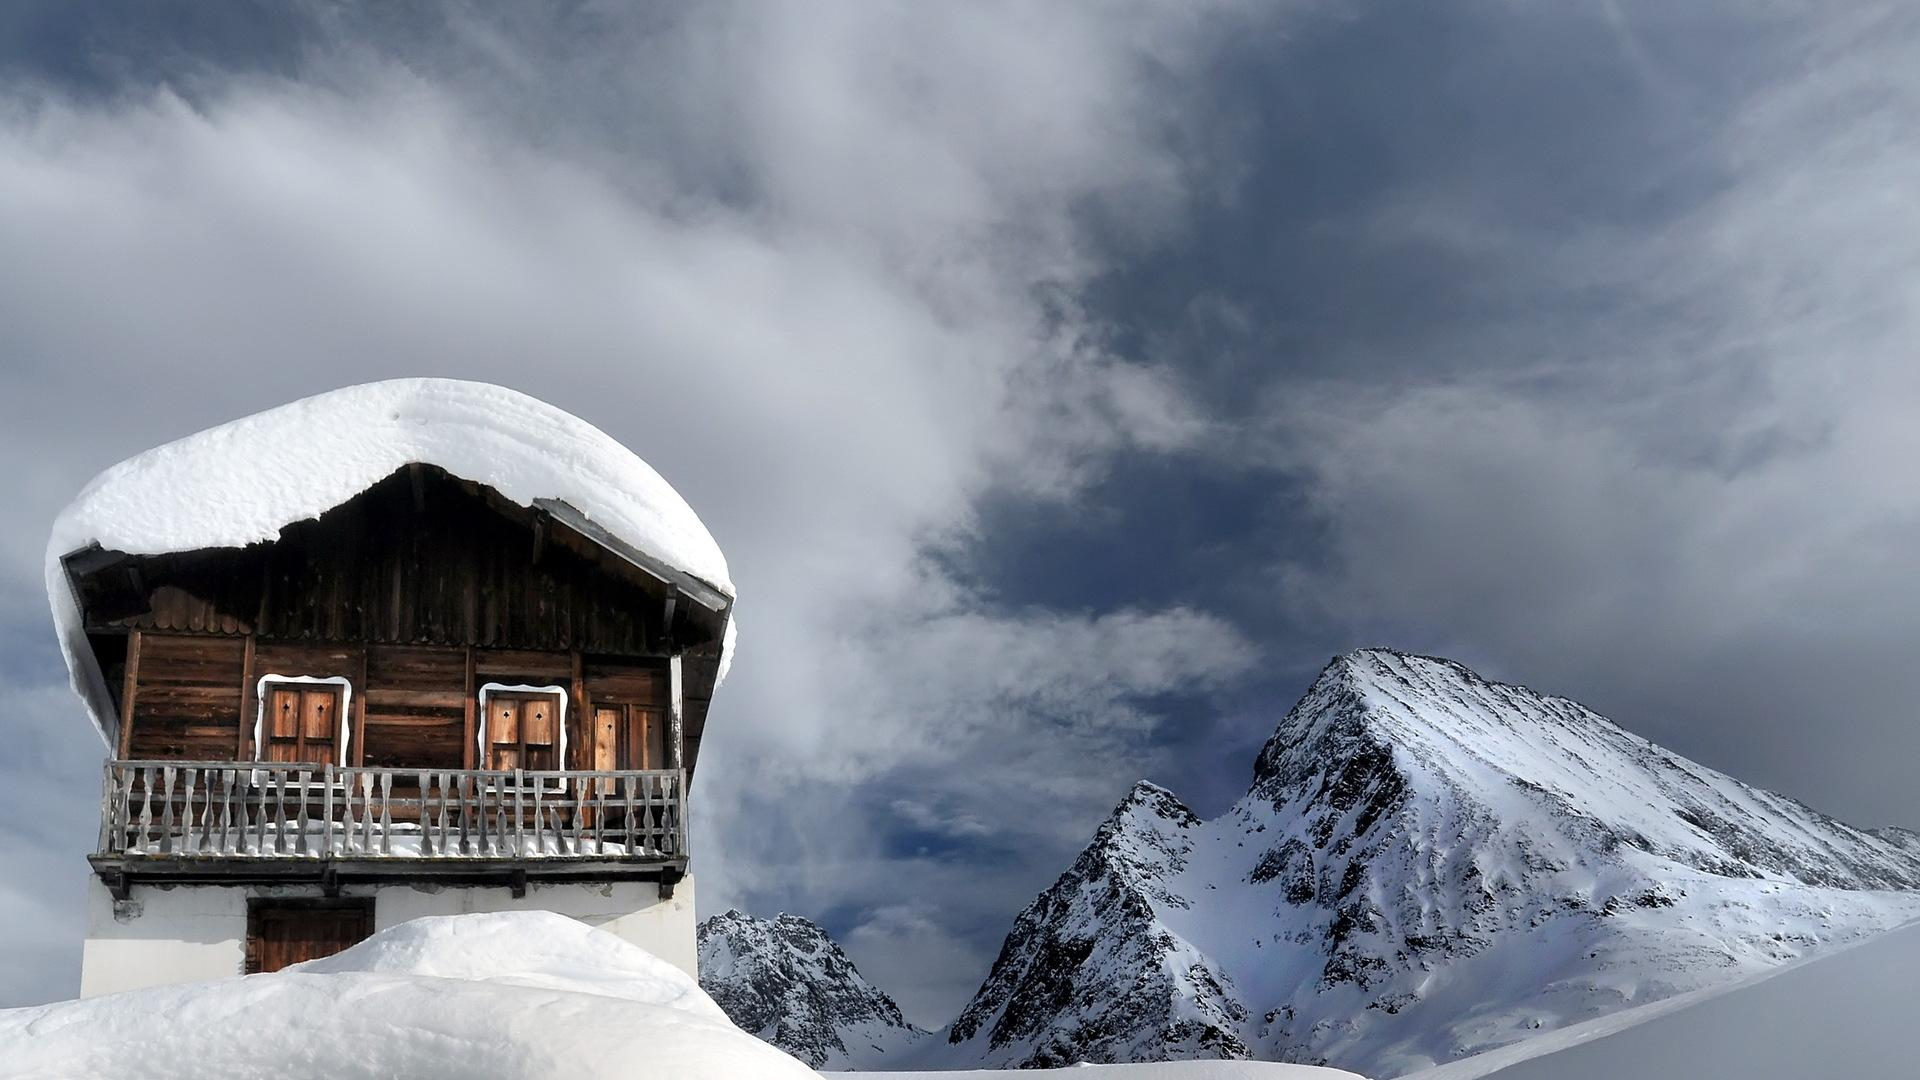 Snow covered chalet up high in the mountains HQ WALLPAPER   111569 1920x1080